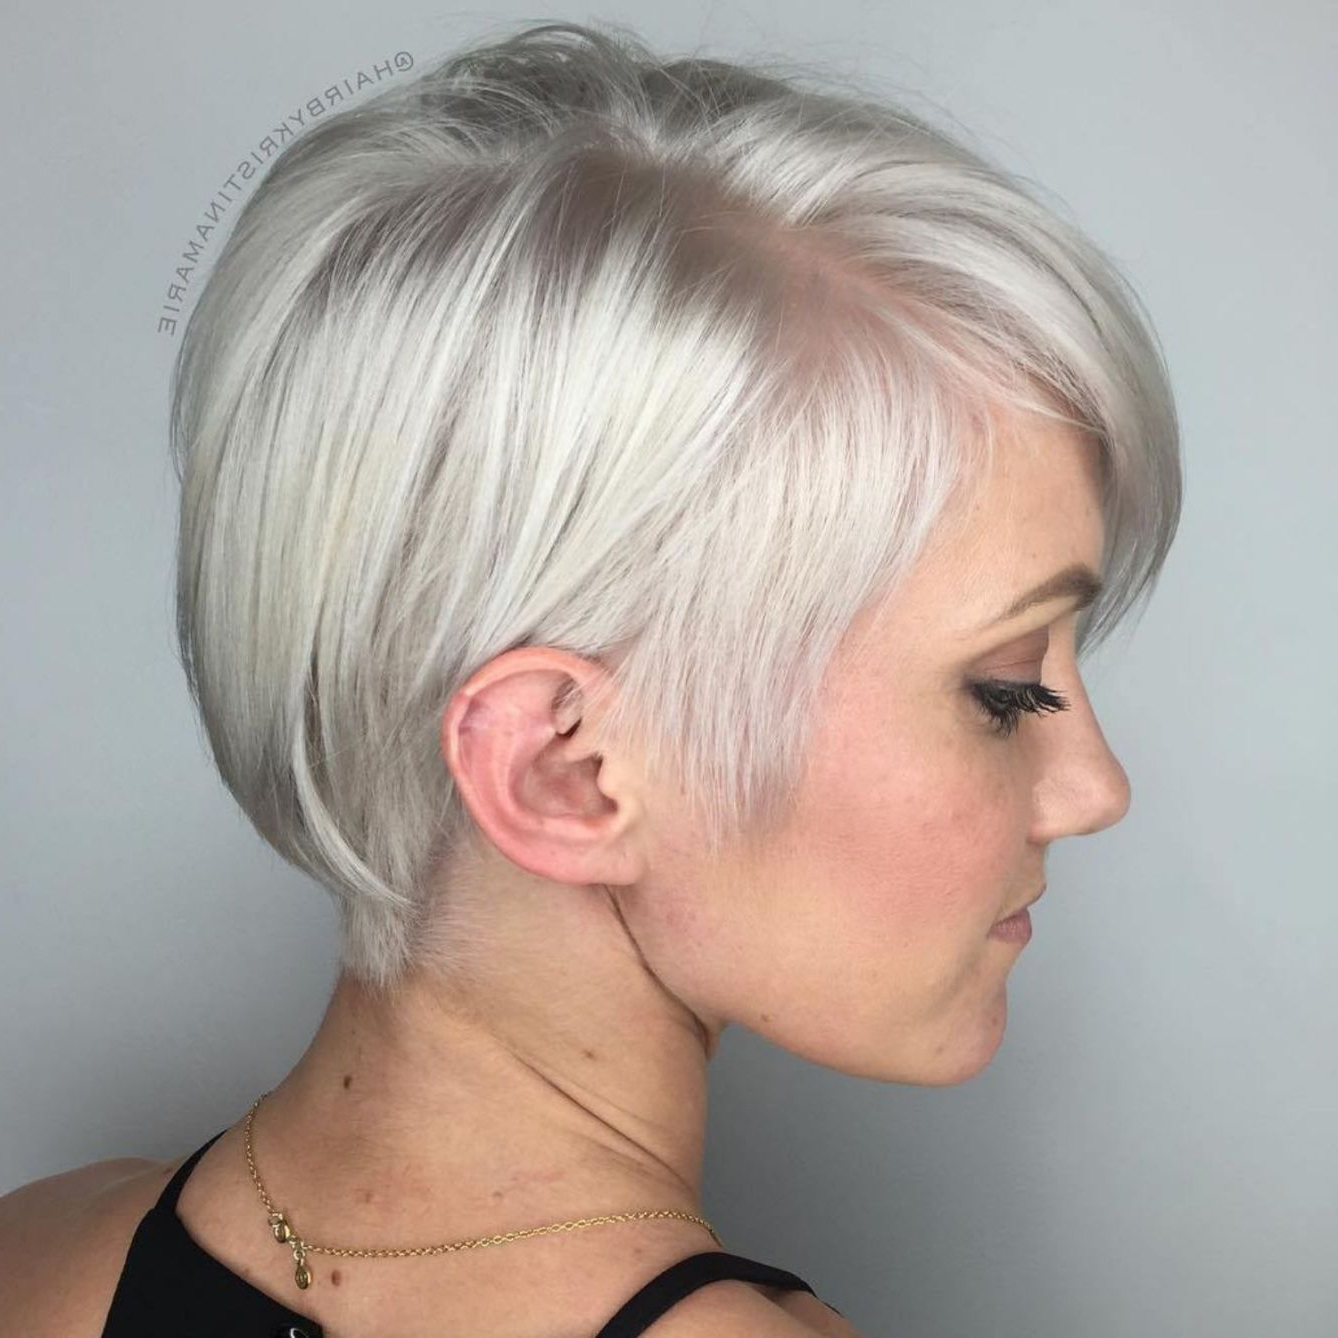 100 Mind Blowing Short Hairstyles For Fine Hair (View 15 of 20)